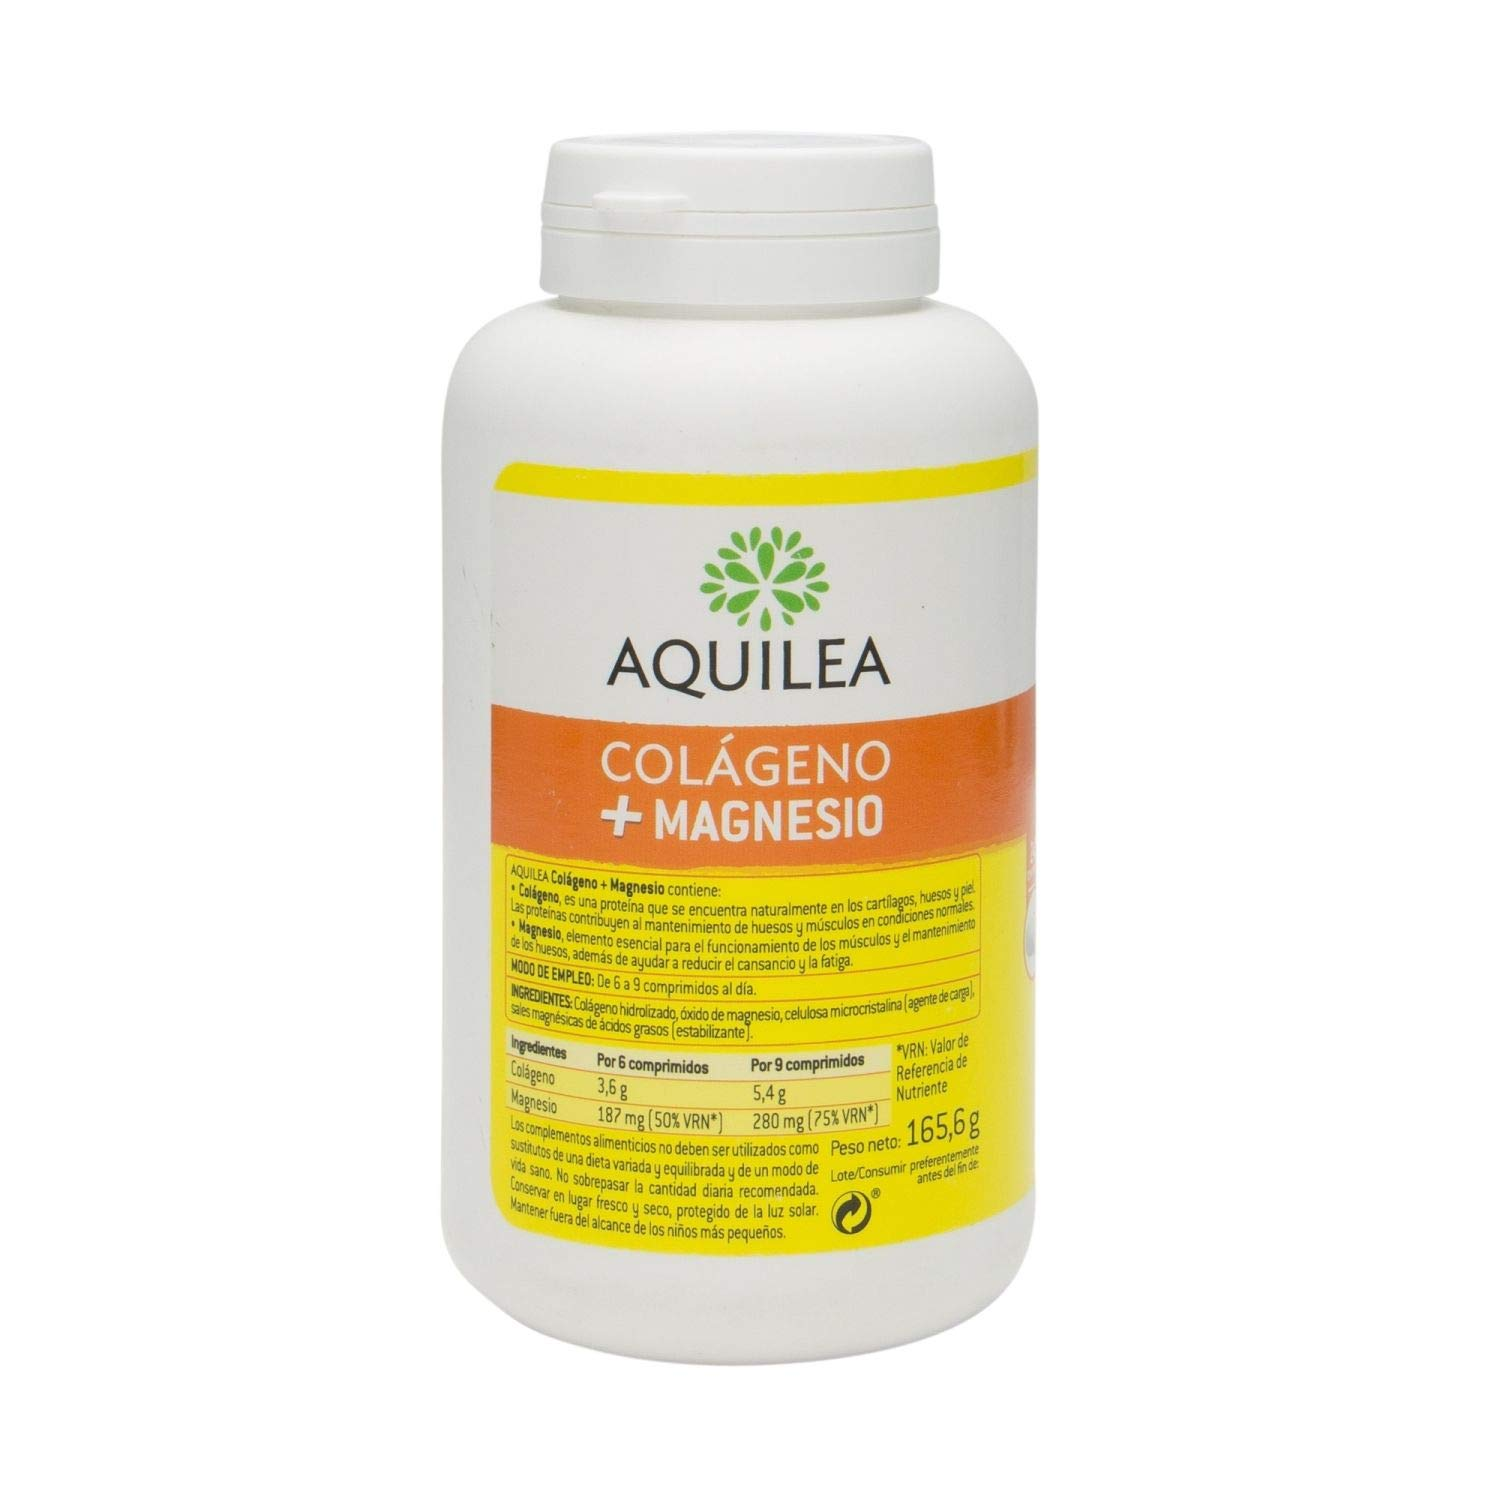 Amazon.com: Aquilea Collagen+Magnesium - 240 tabs - for Bone and Joint Well-Being - Spain: Health & Personal Care